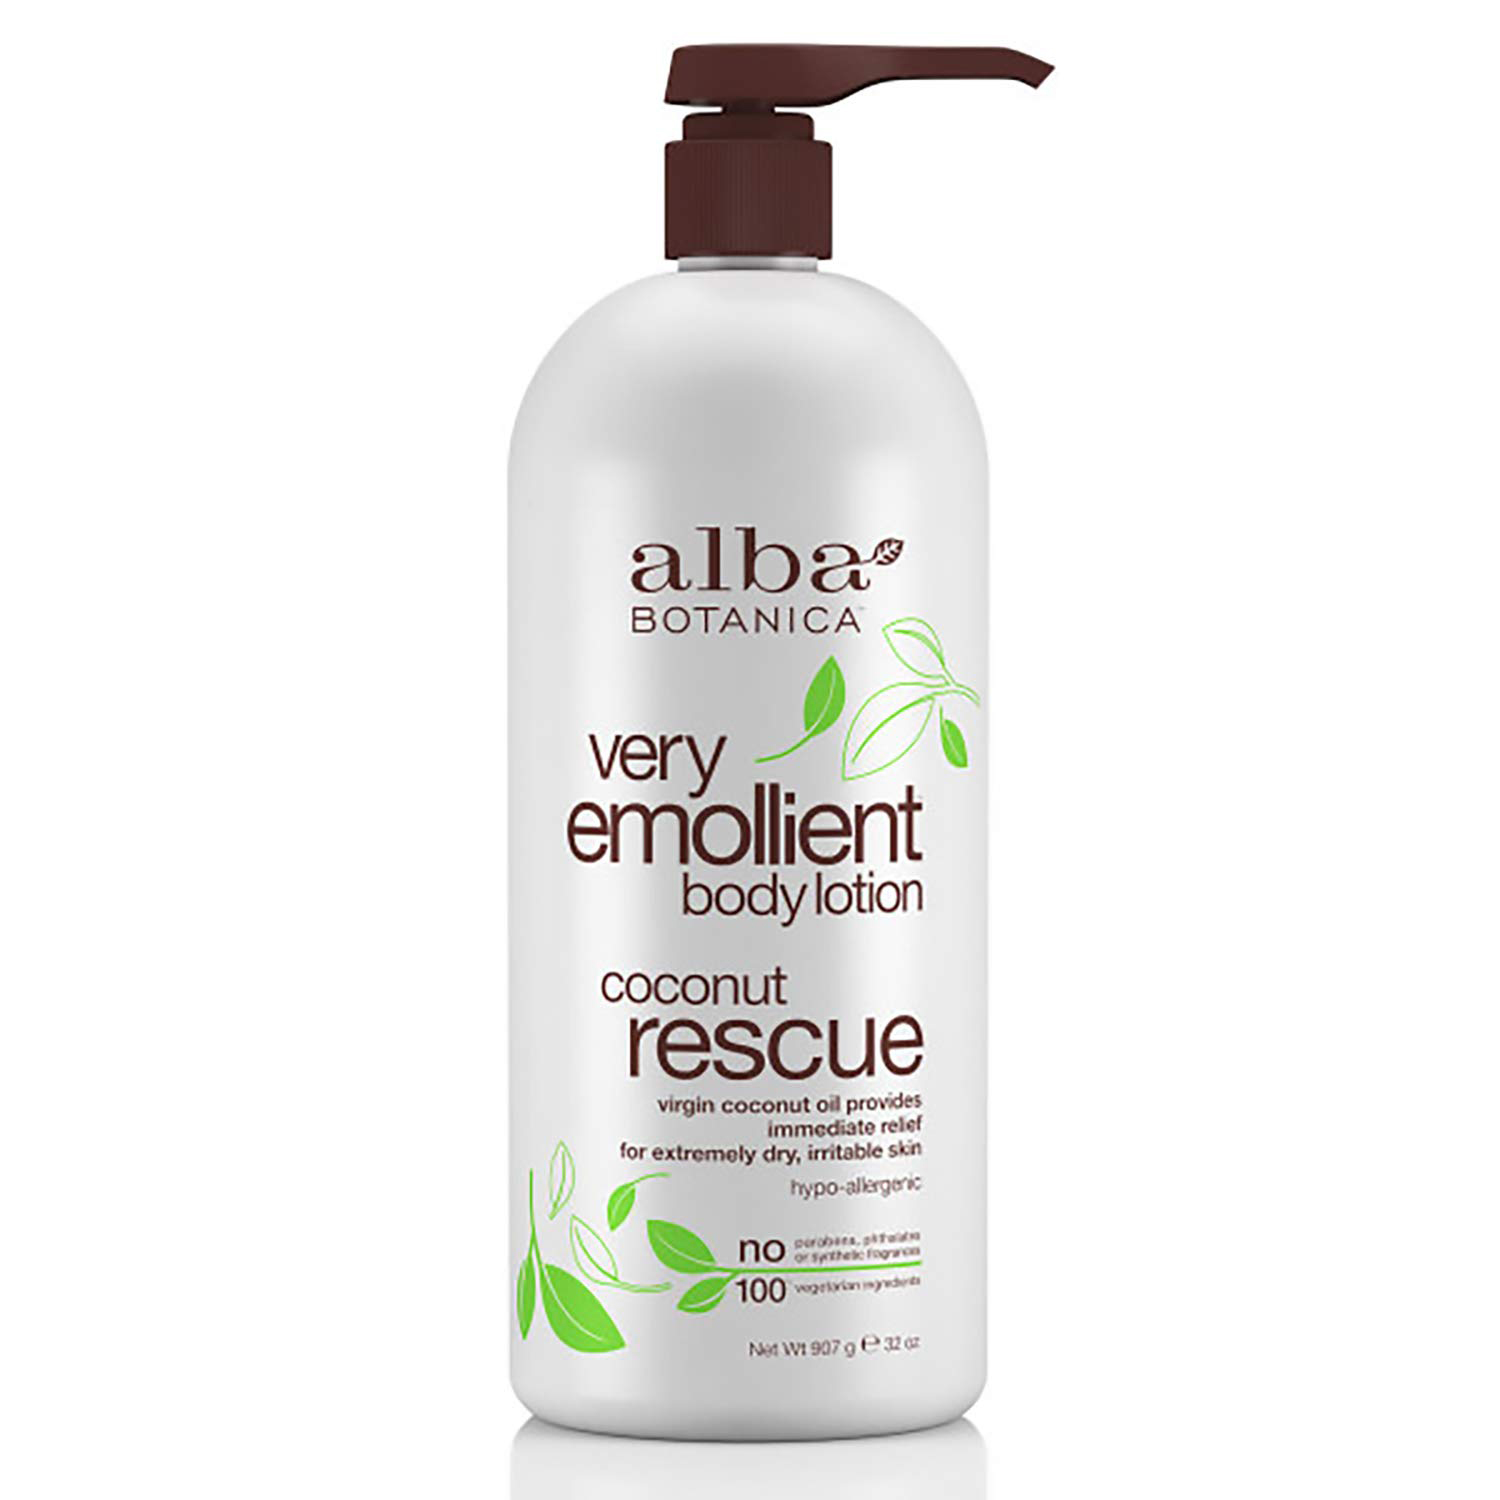 Alba Botanica Very Emollient Body Lotion